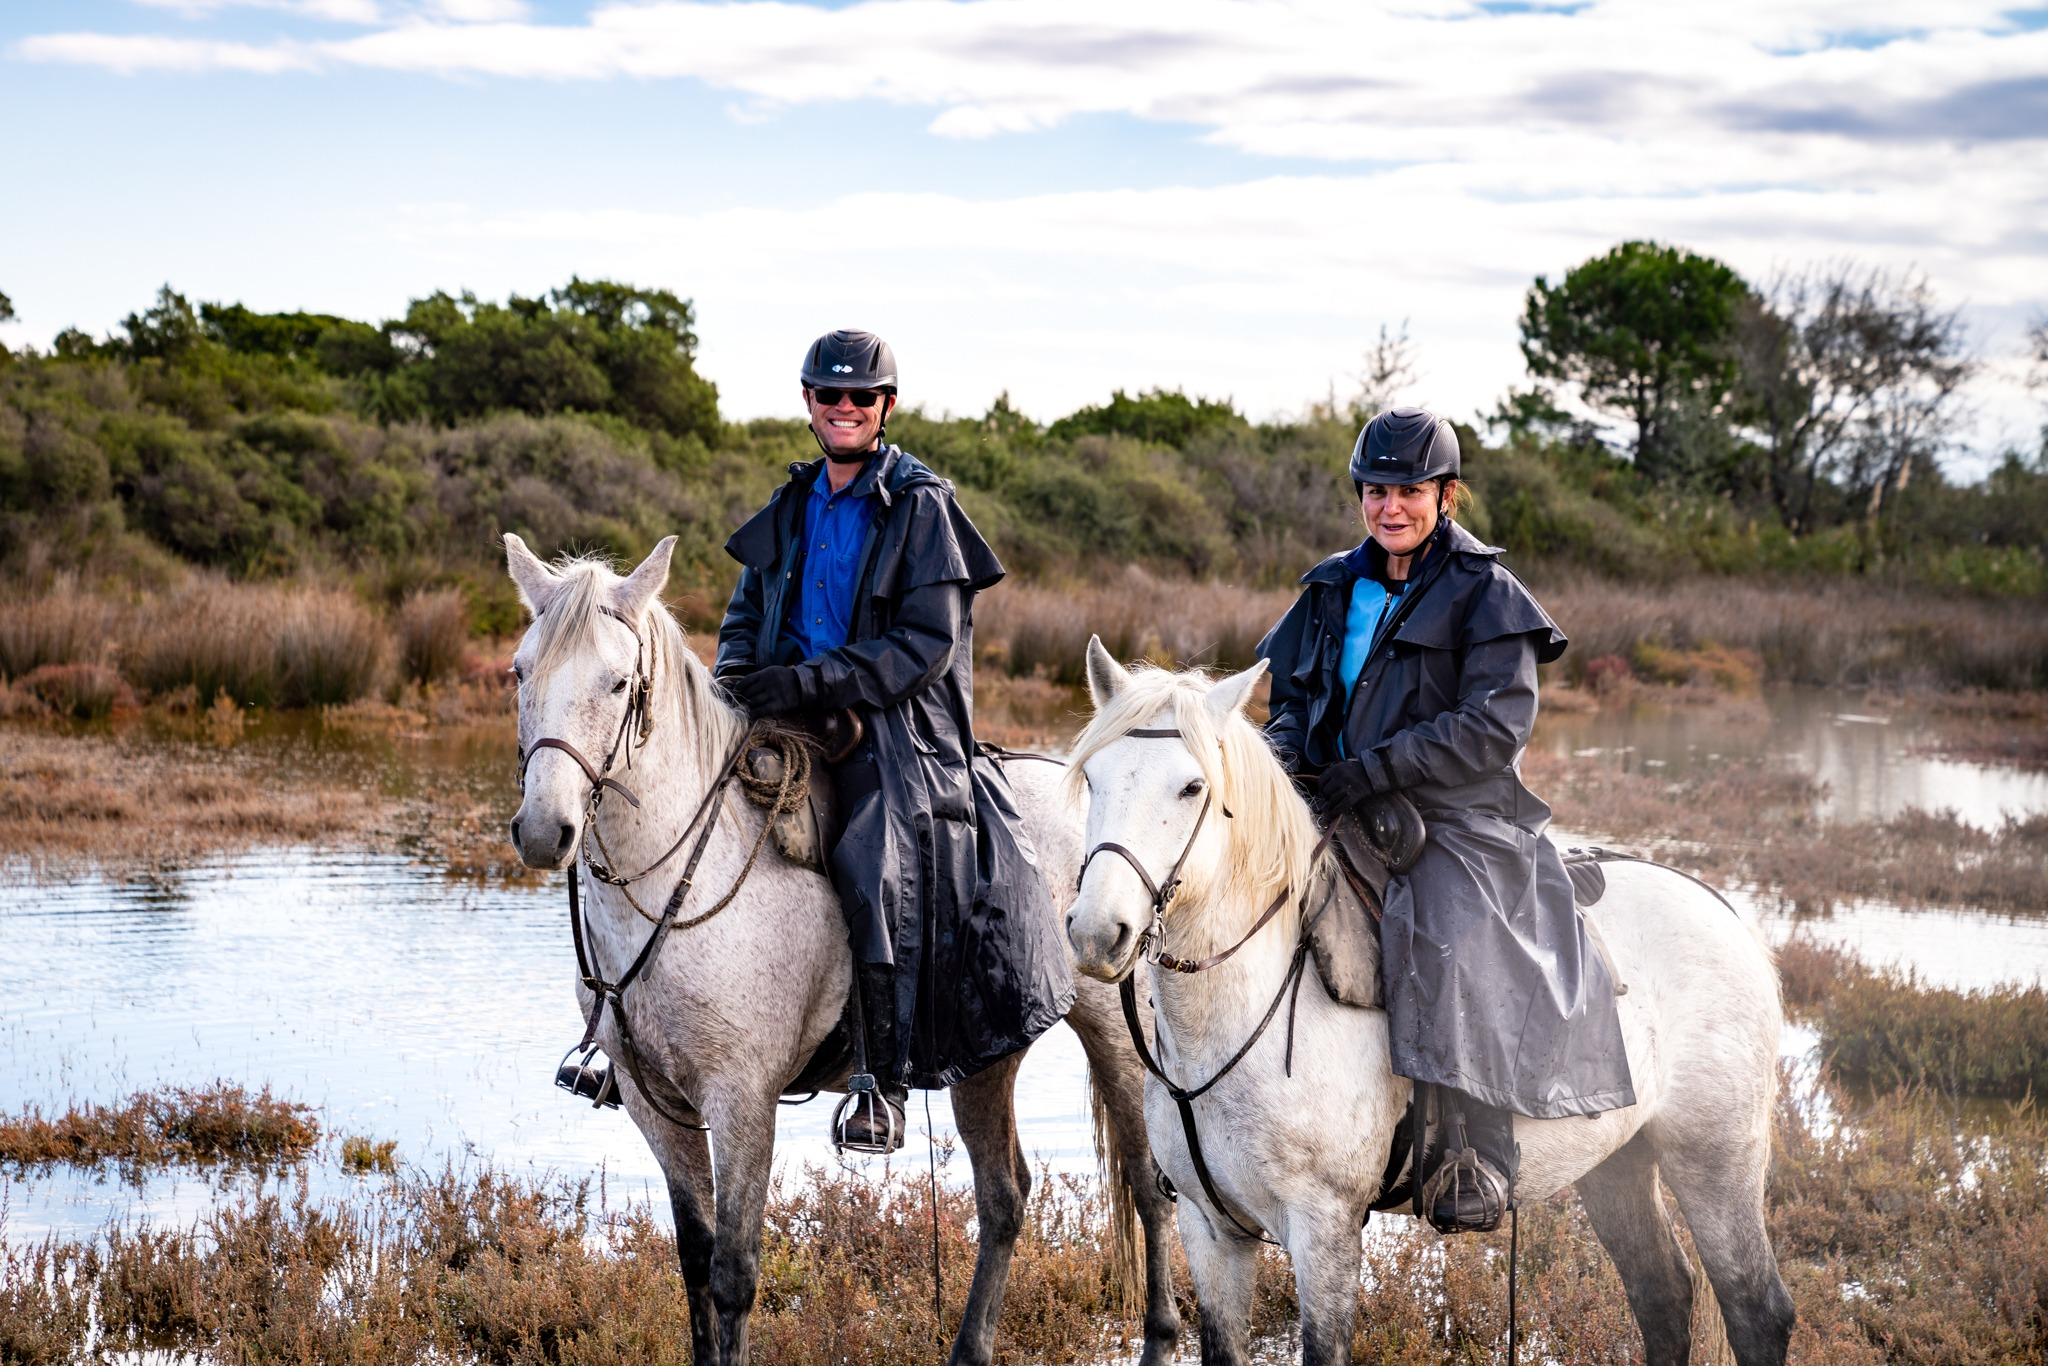 Don't leave home without a waterproof jacket - Globetrotting horse riding holidays